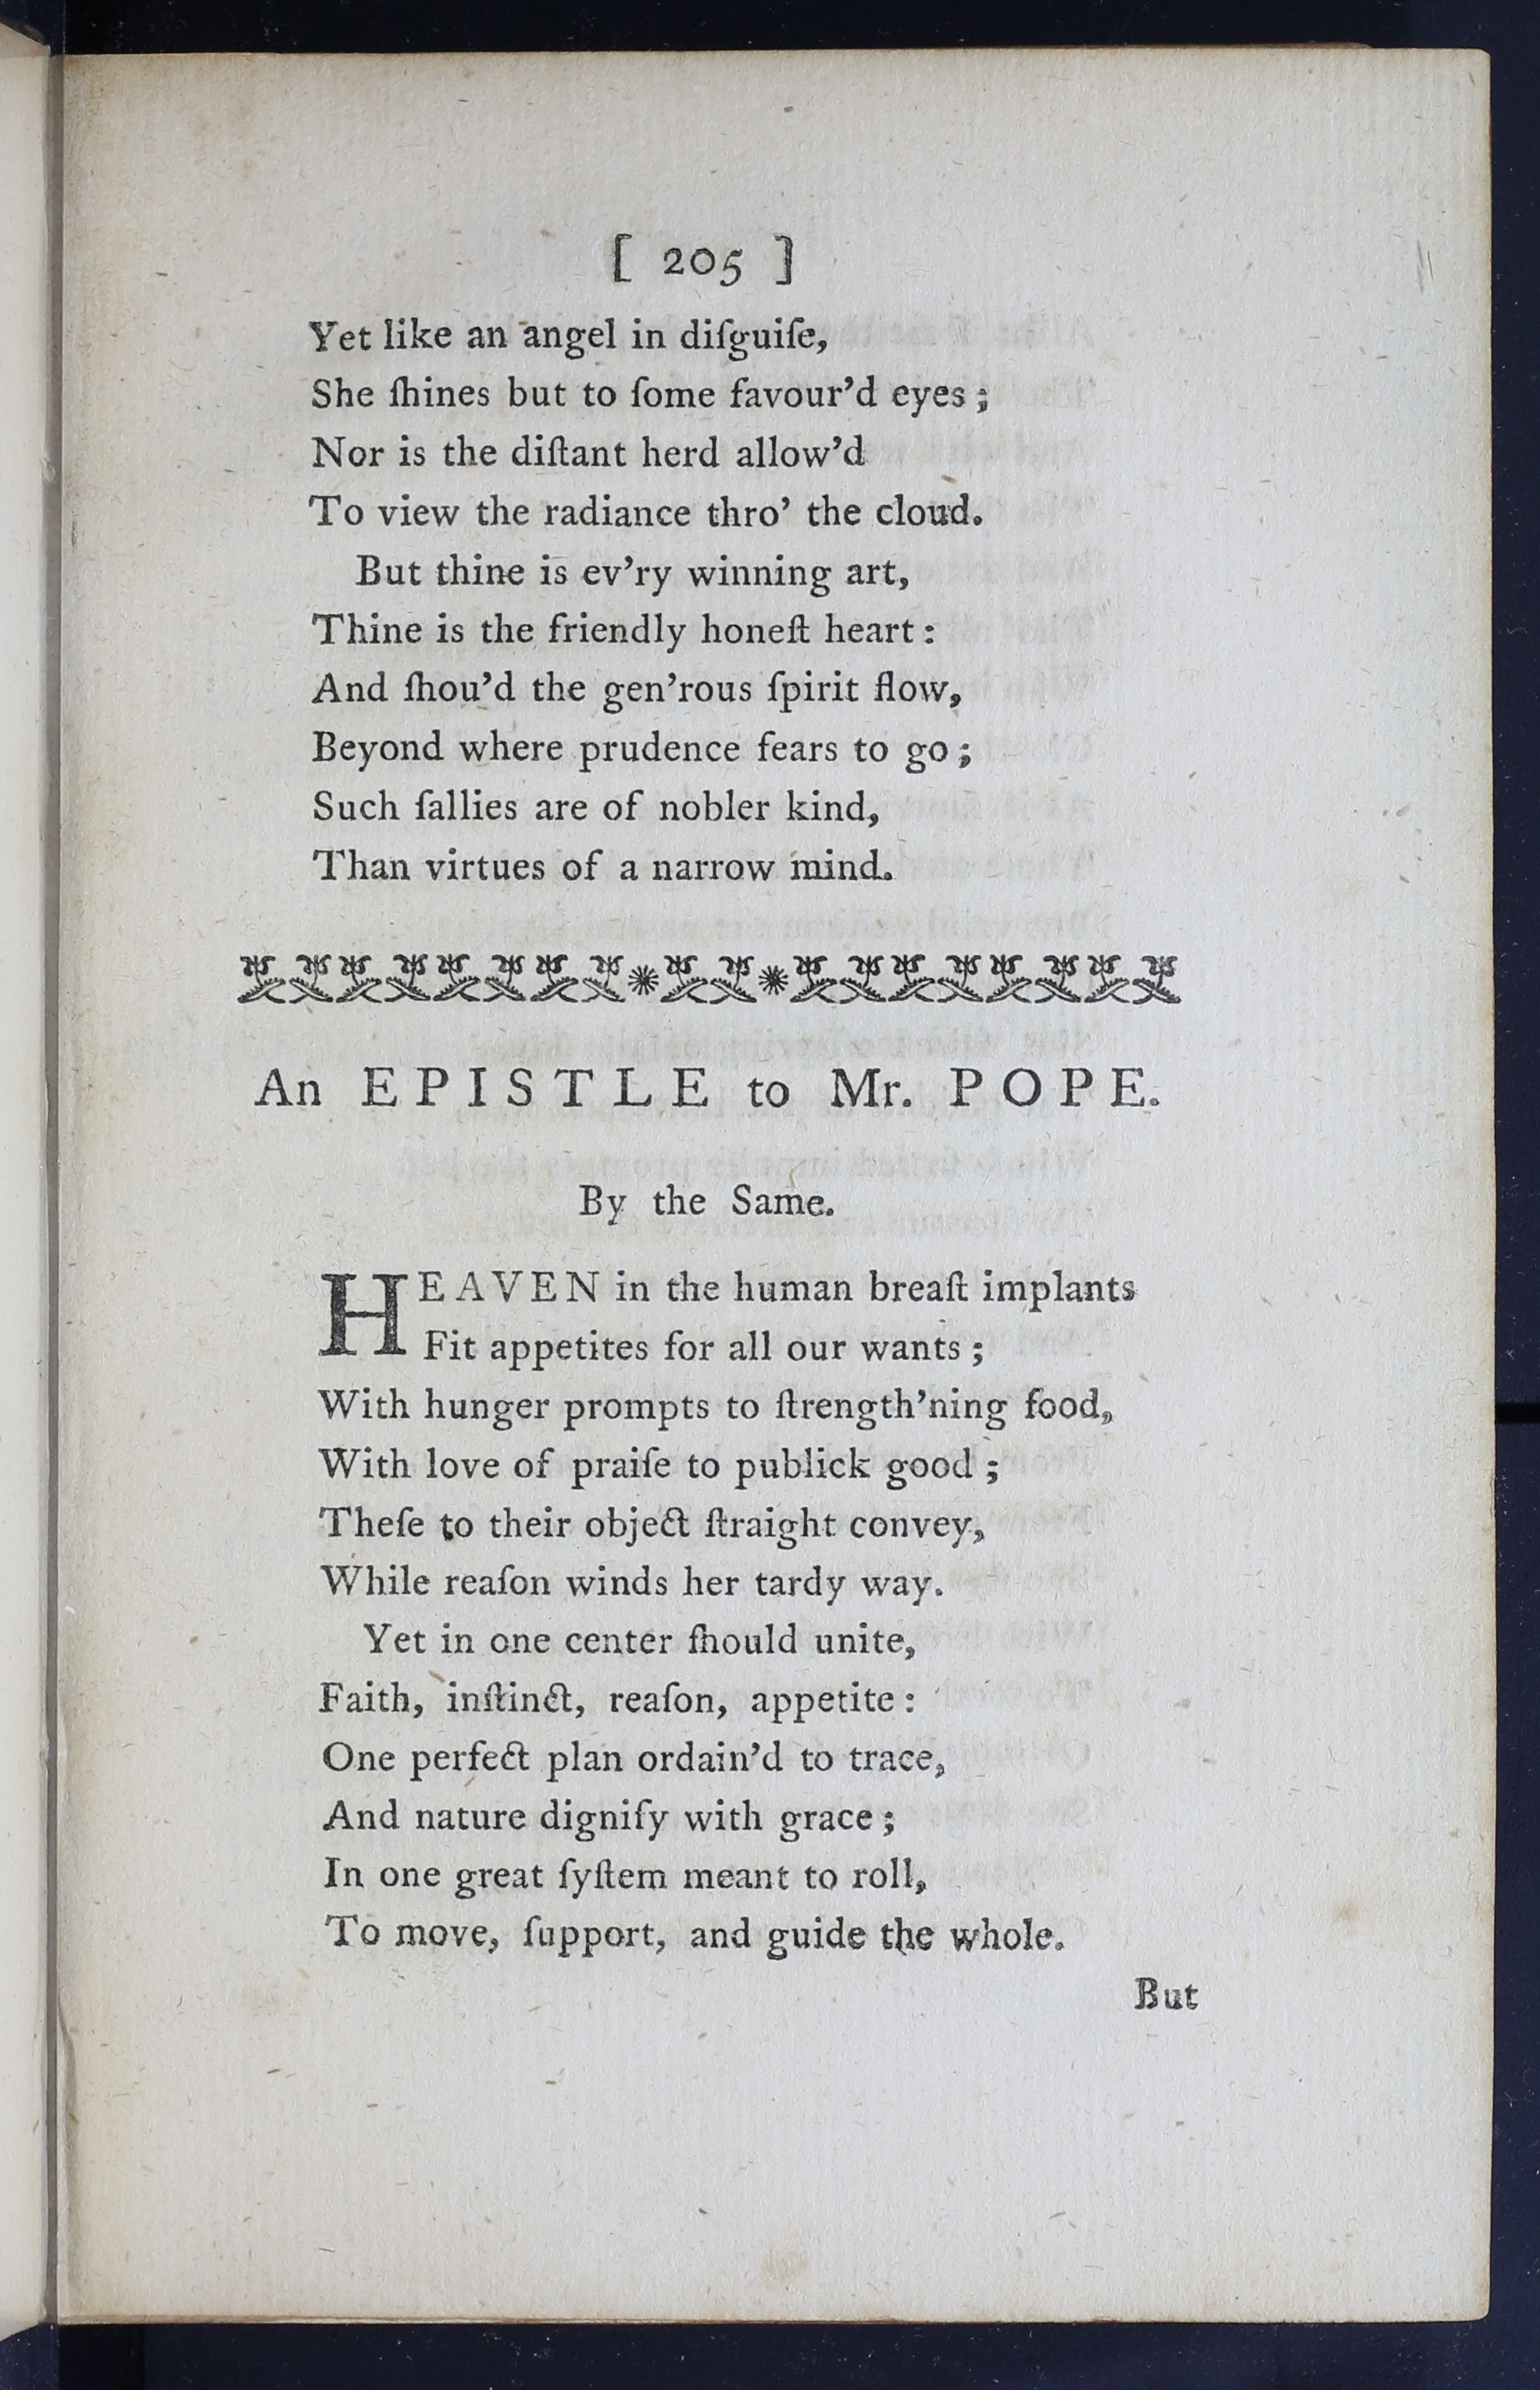 an epistle to mr pope